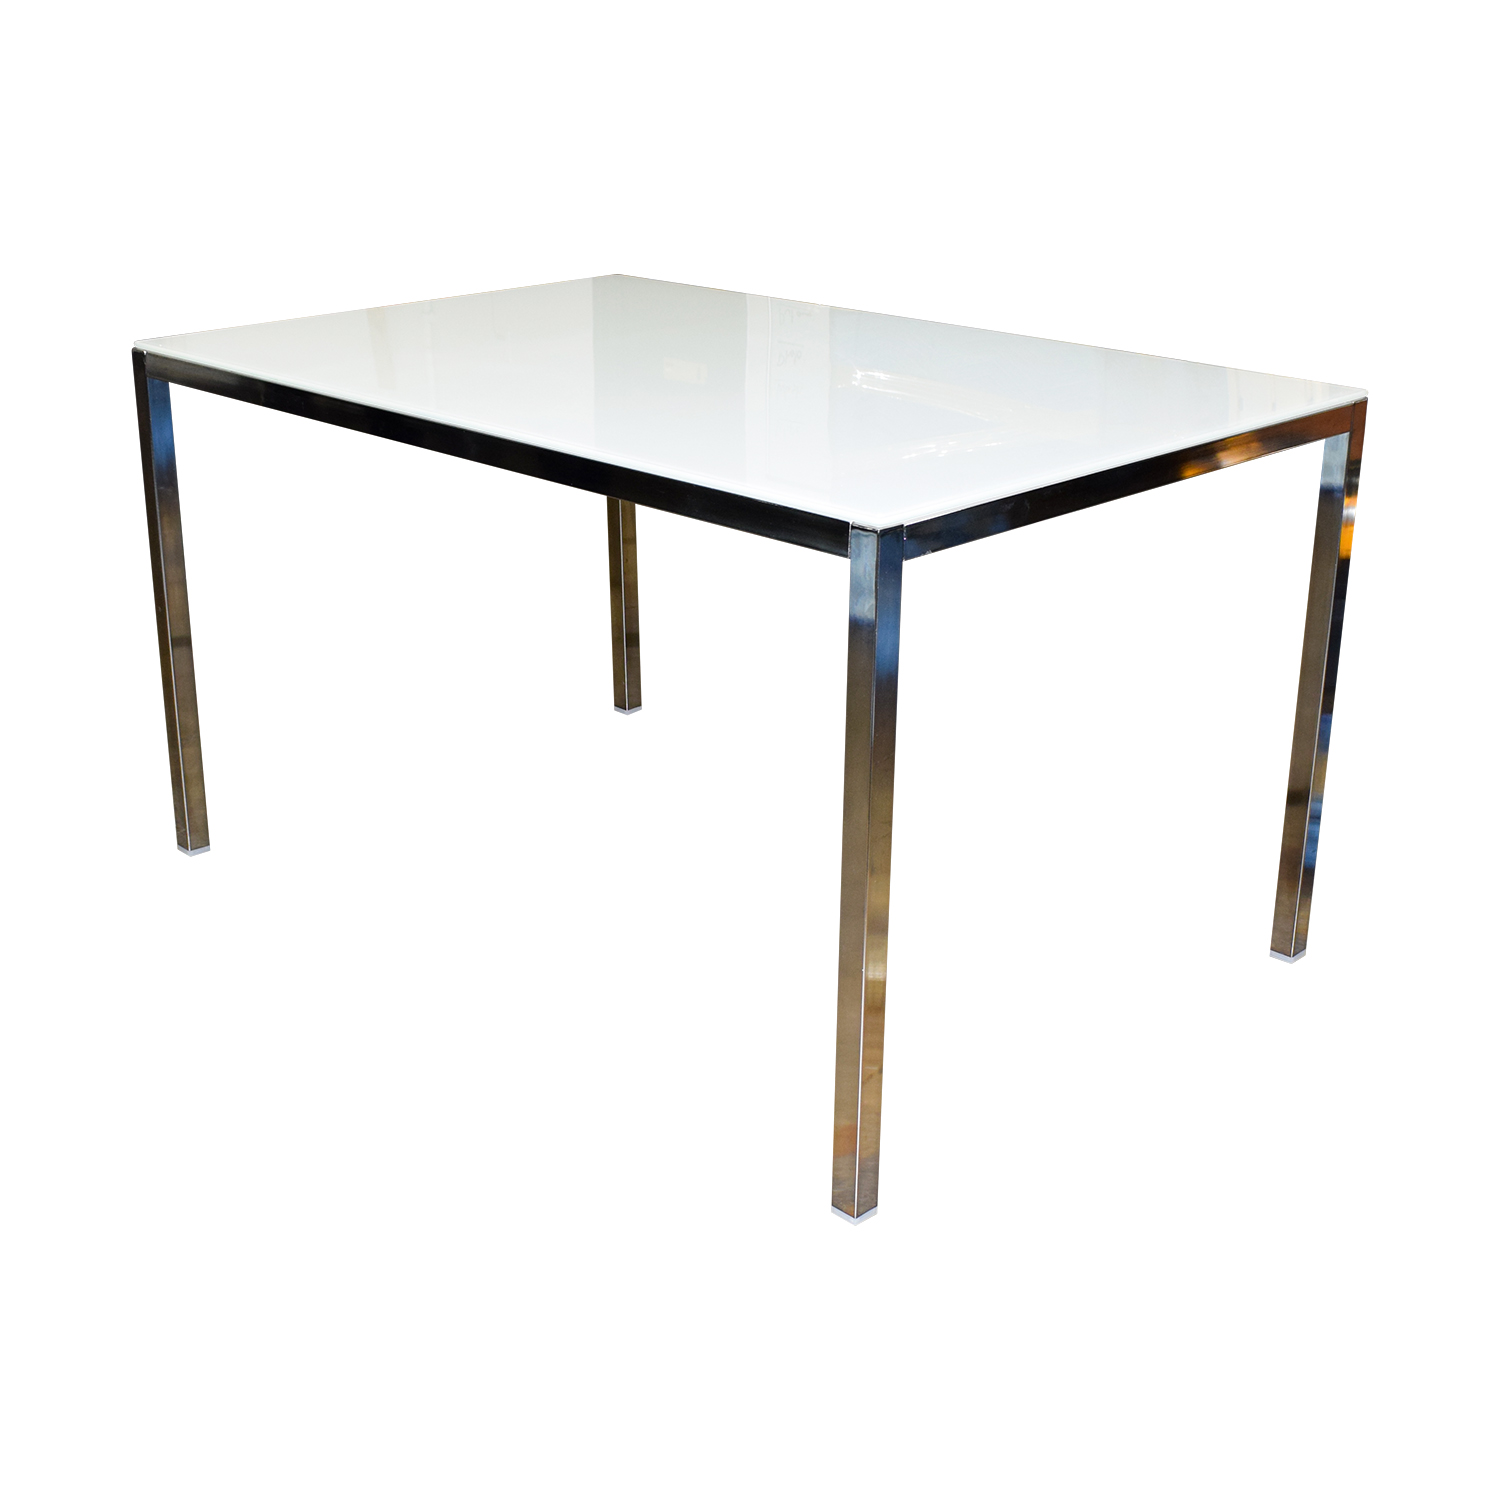 IKEA IKEA White Top And Chrome Base Dining Table